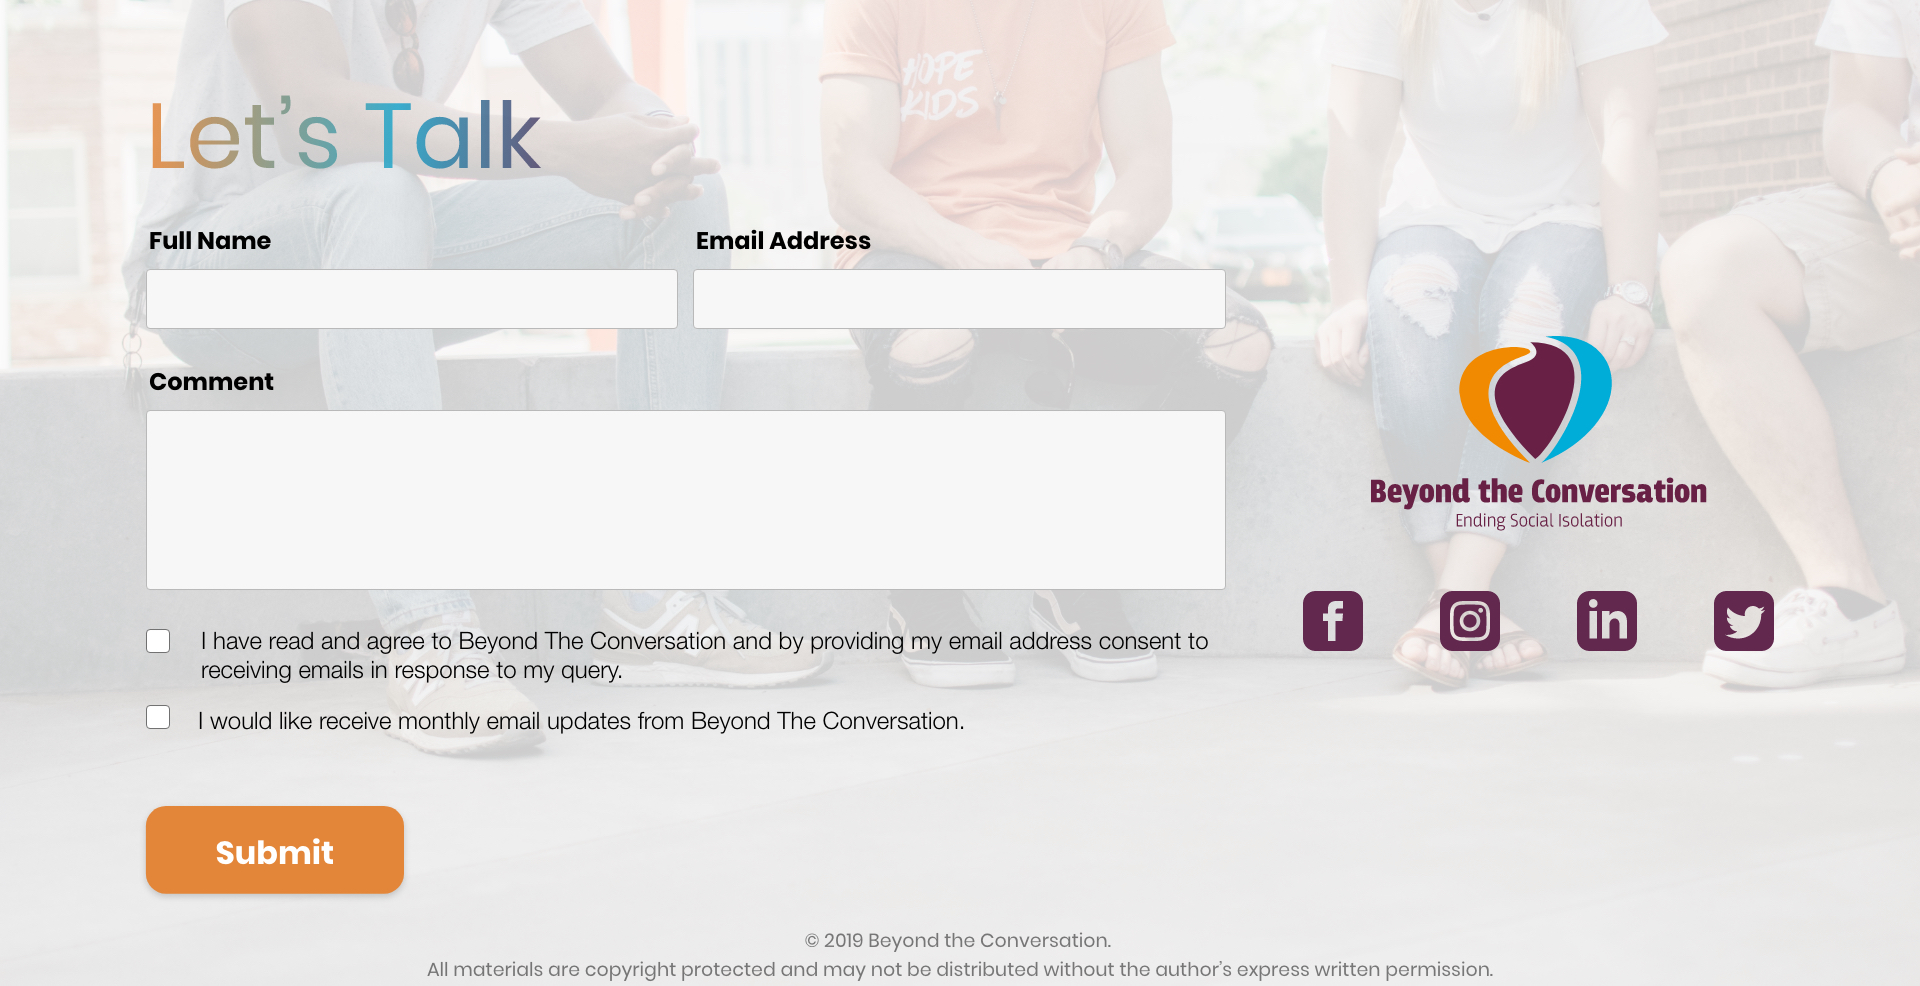 Let's Talk form to subscribe for the monthly updates from Beyond the Conversation, and the social networks.